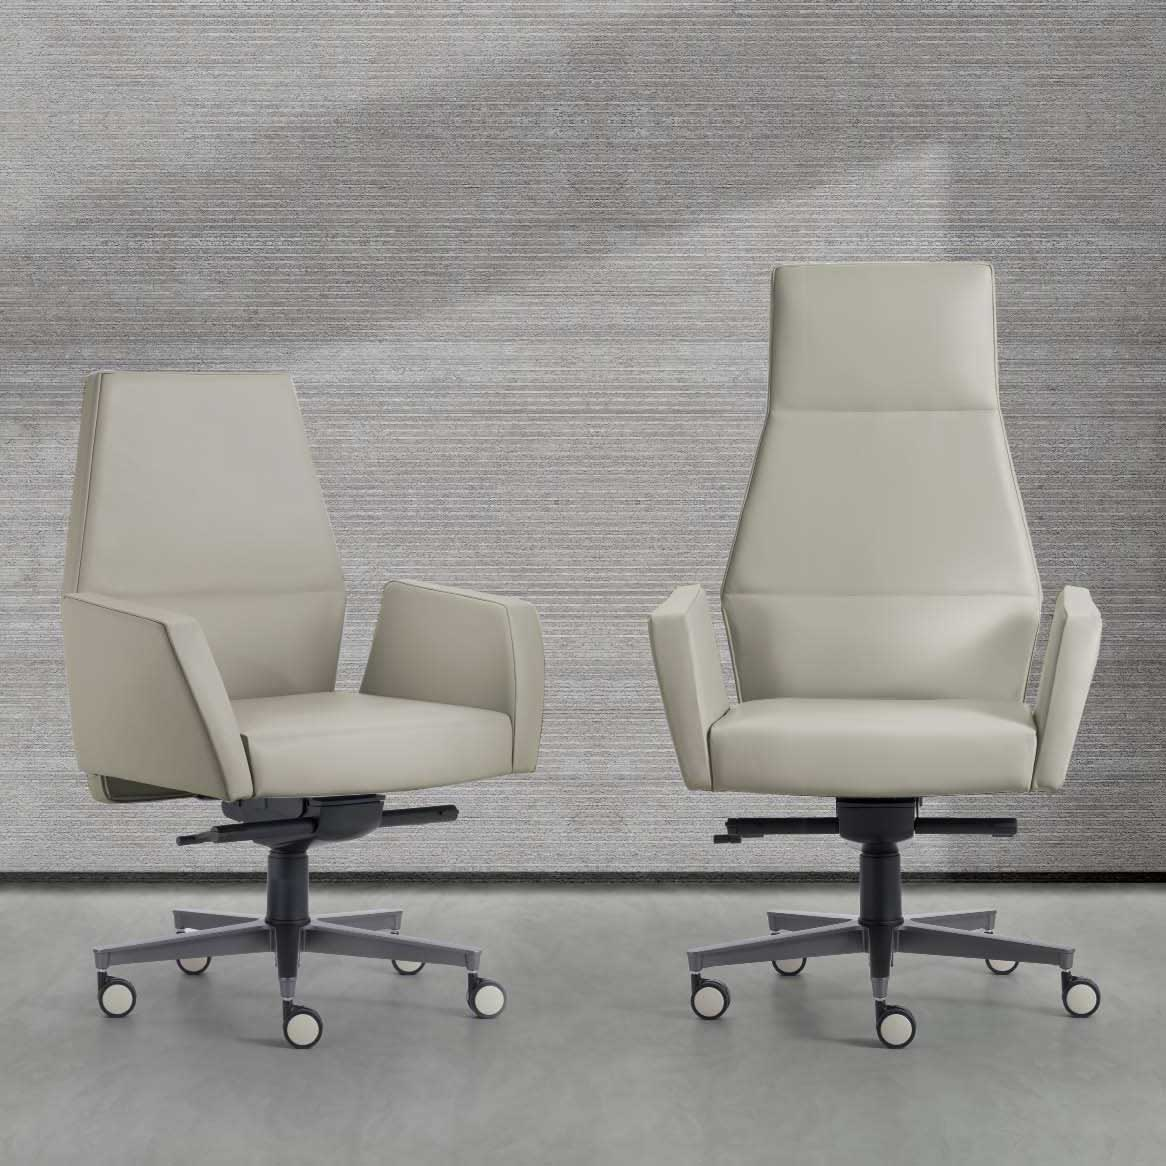 Kefa executive and conference armchairs in white leather, design Matteo Nunziati. Steel frame and polyurethane. 5-star aluminium swivel base. Free delivery. Online shopping